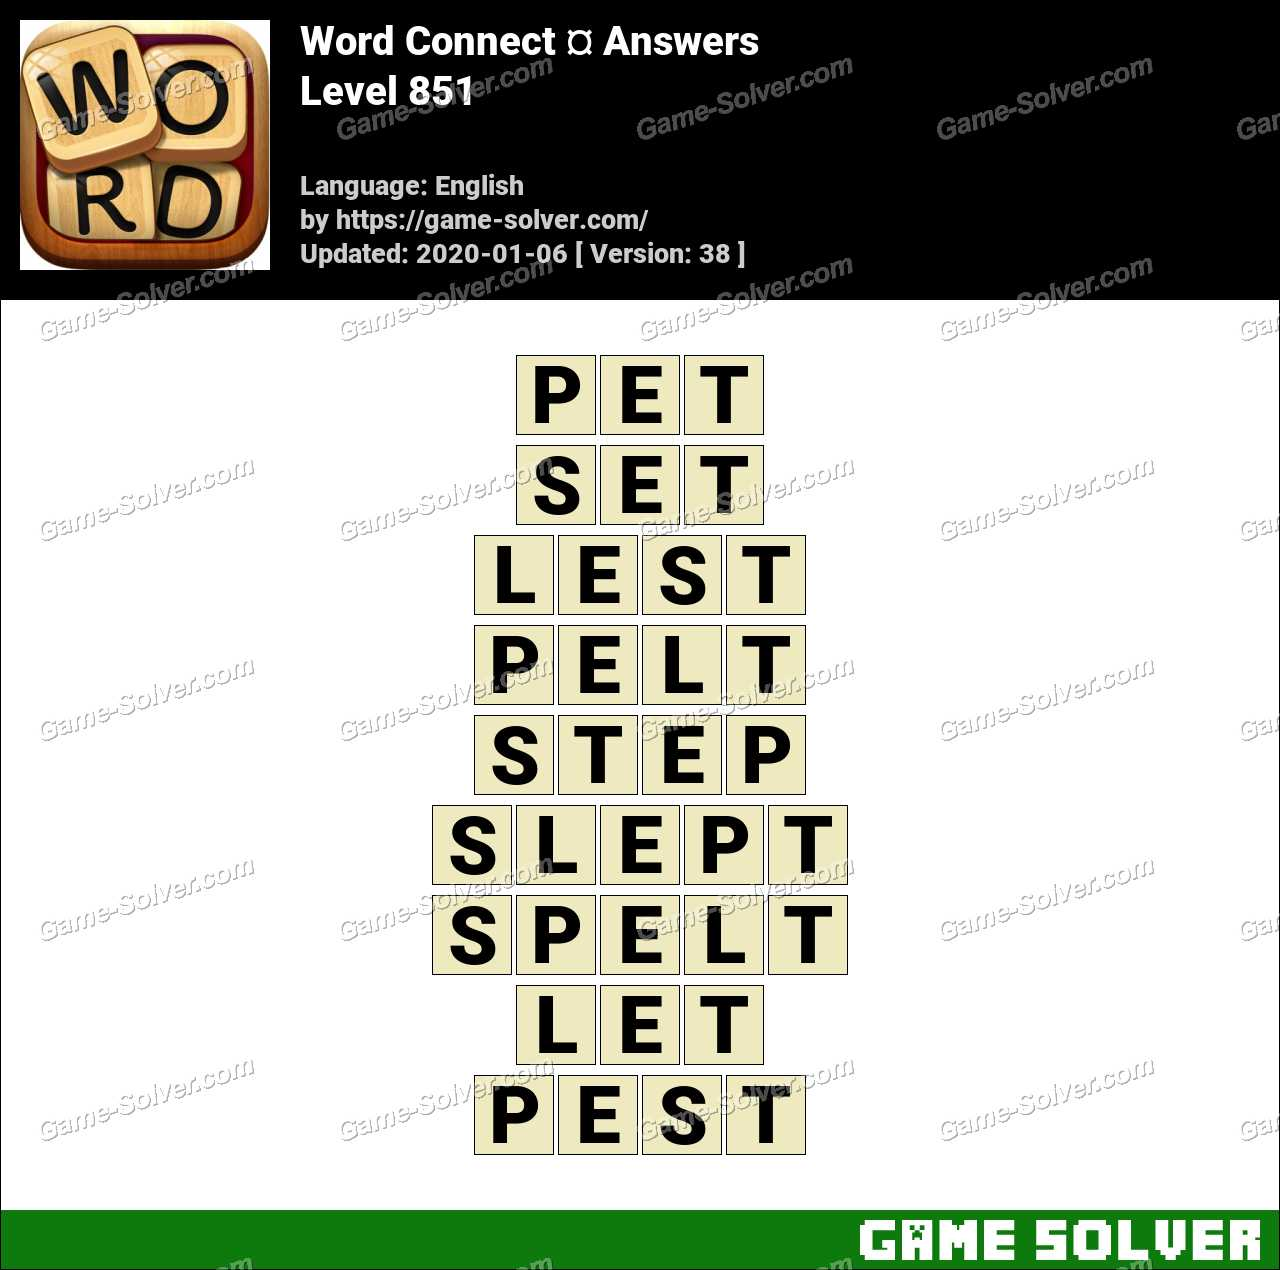 Word Connect Level 851 Answers